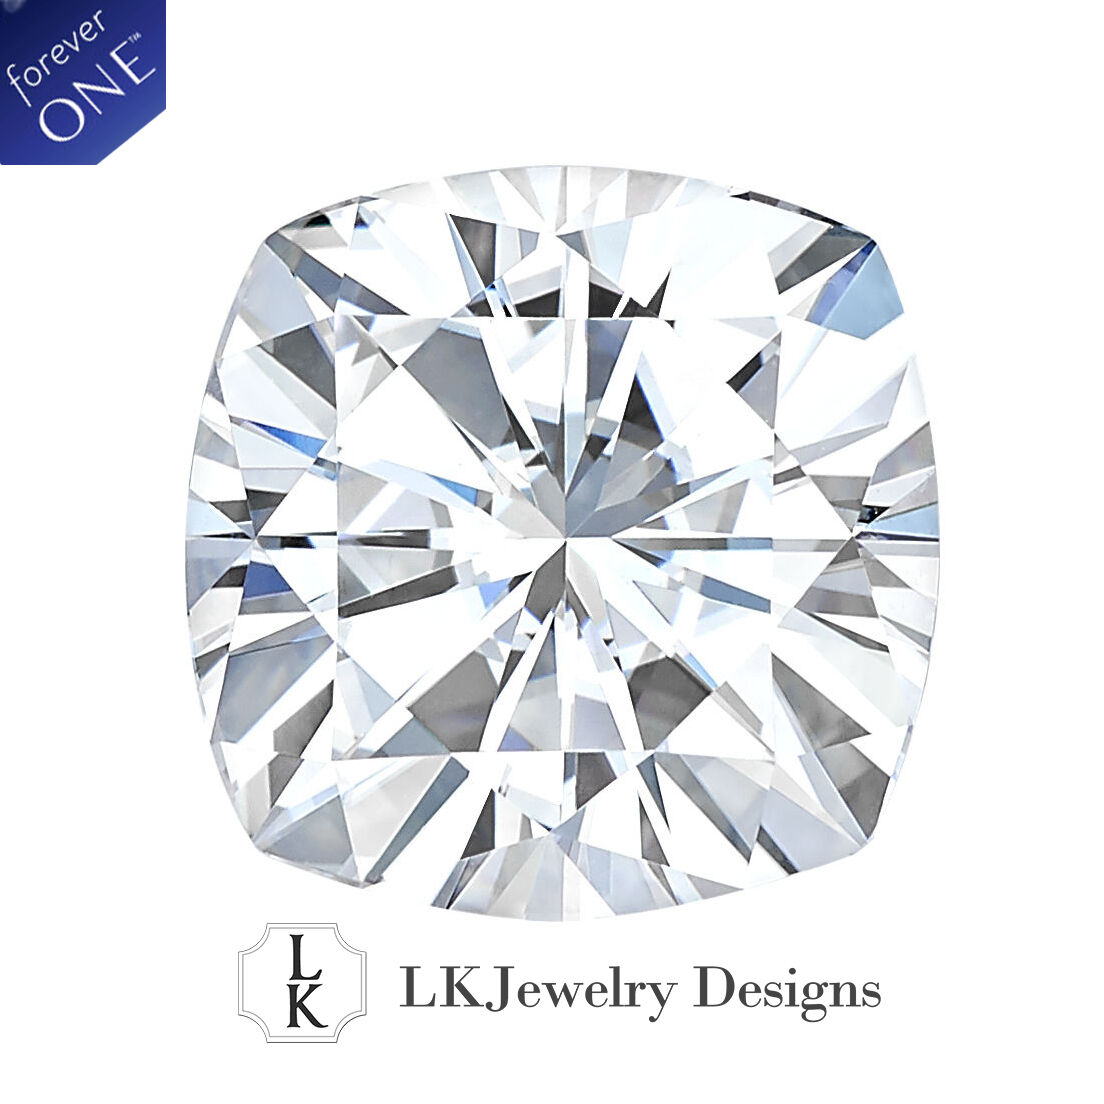 2.40 CT MOISSANITE FOREVER ONE CUSHION LOOSE STONE - 8.0 mm